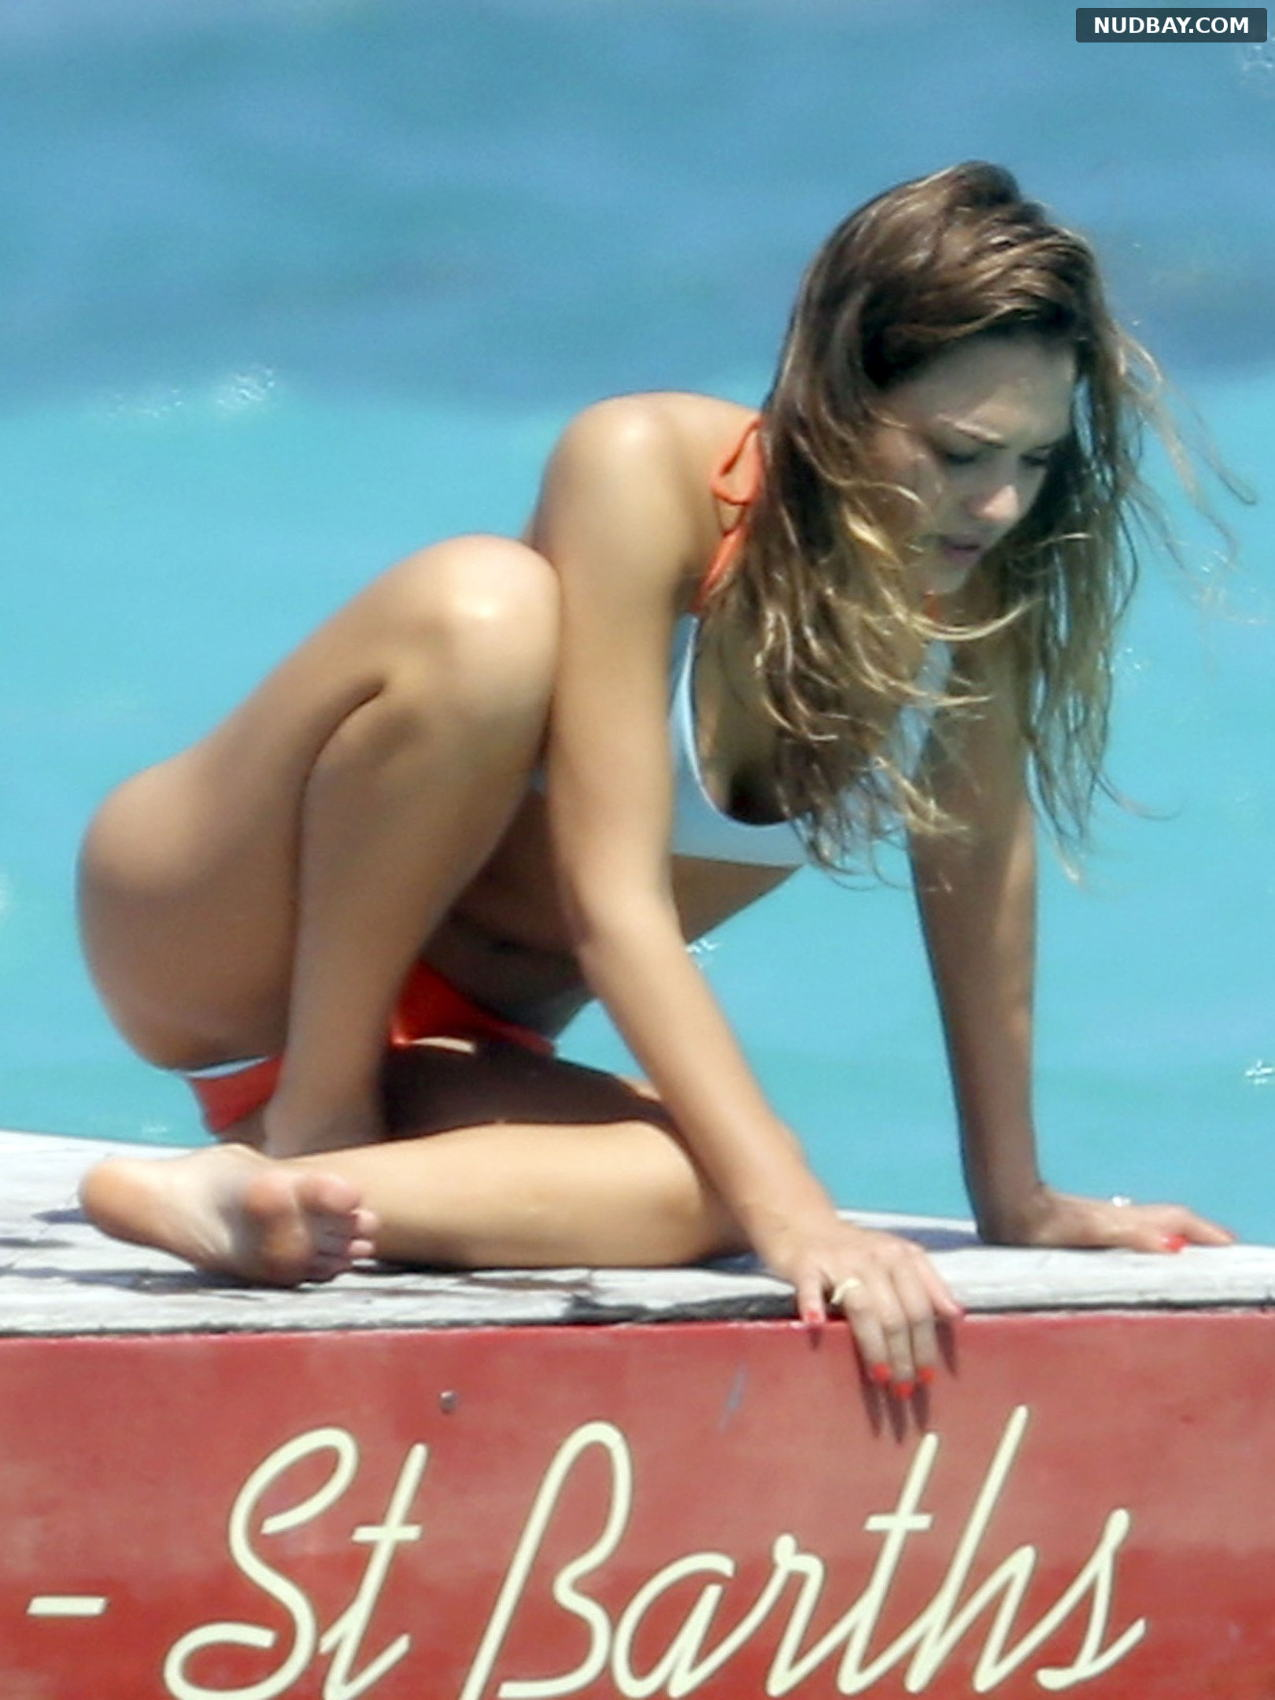 Jessica Alba pussy on the beach in St. Barts March 4 2013